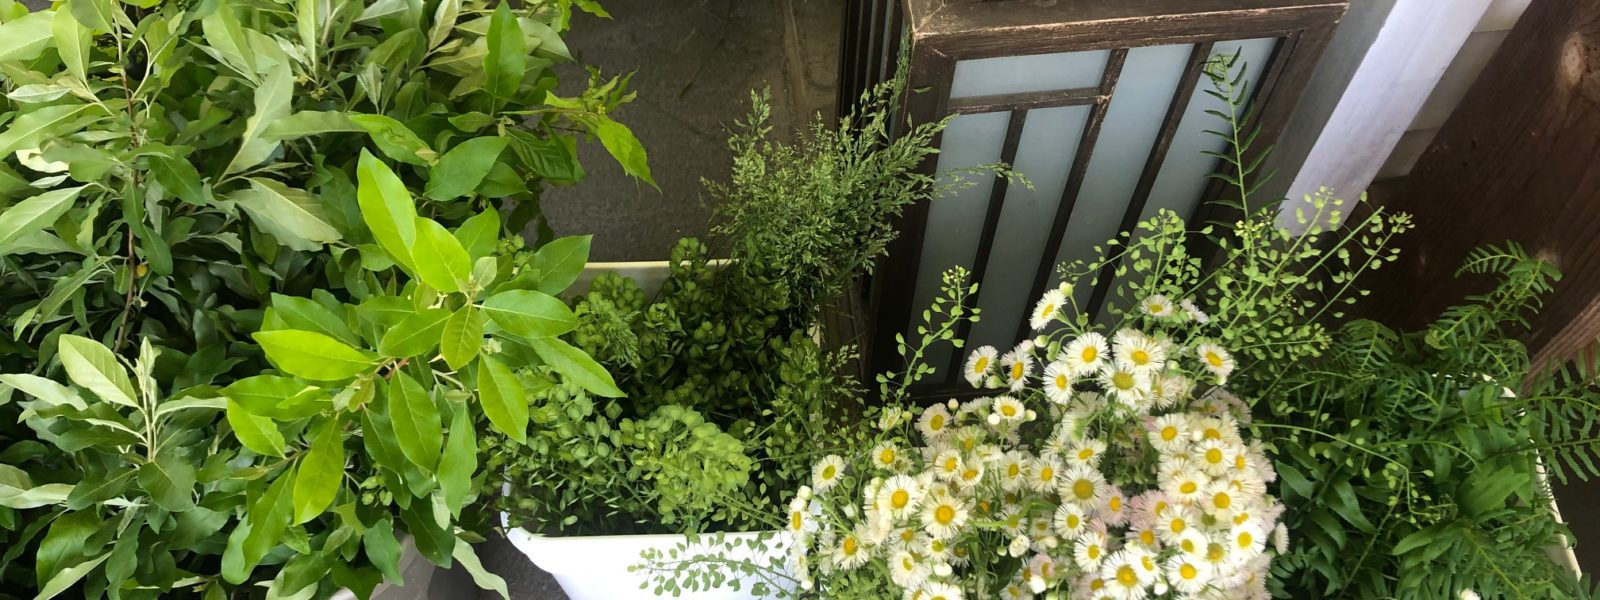 Overhead view of buckets of assorted flowers and greenery.